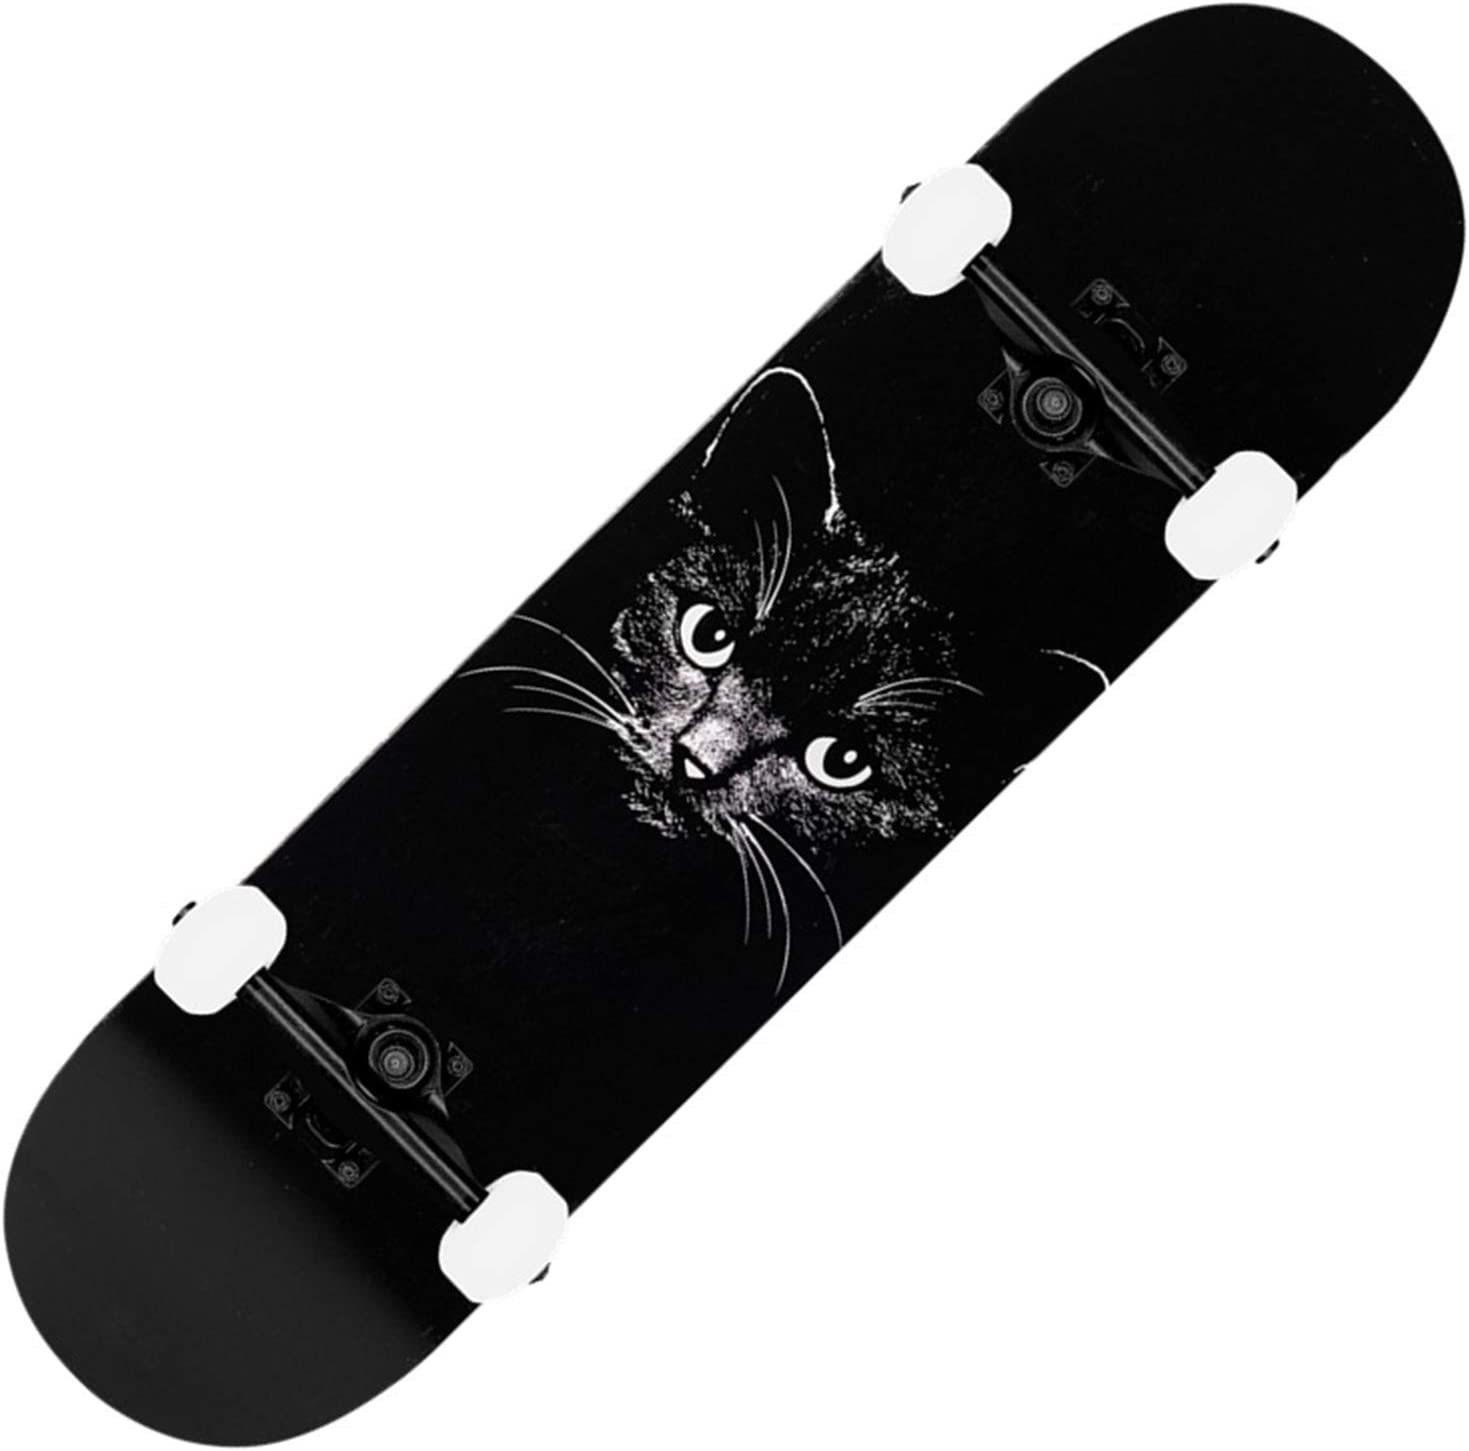 Outdoor sports 31-inch Sales Full Ranking TOP5 Non-Slip Skateboard S High-Strength